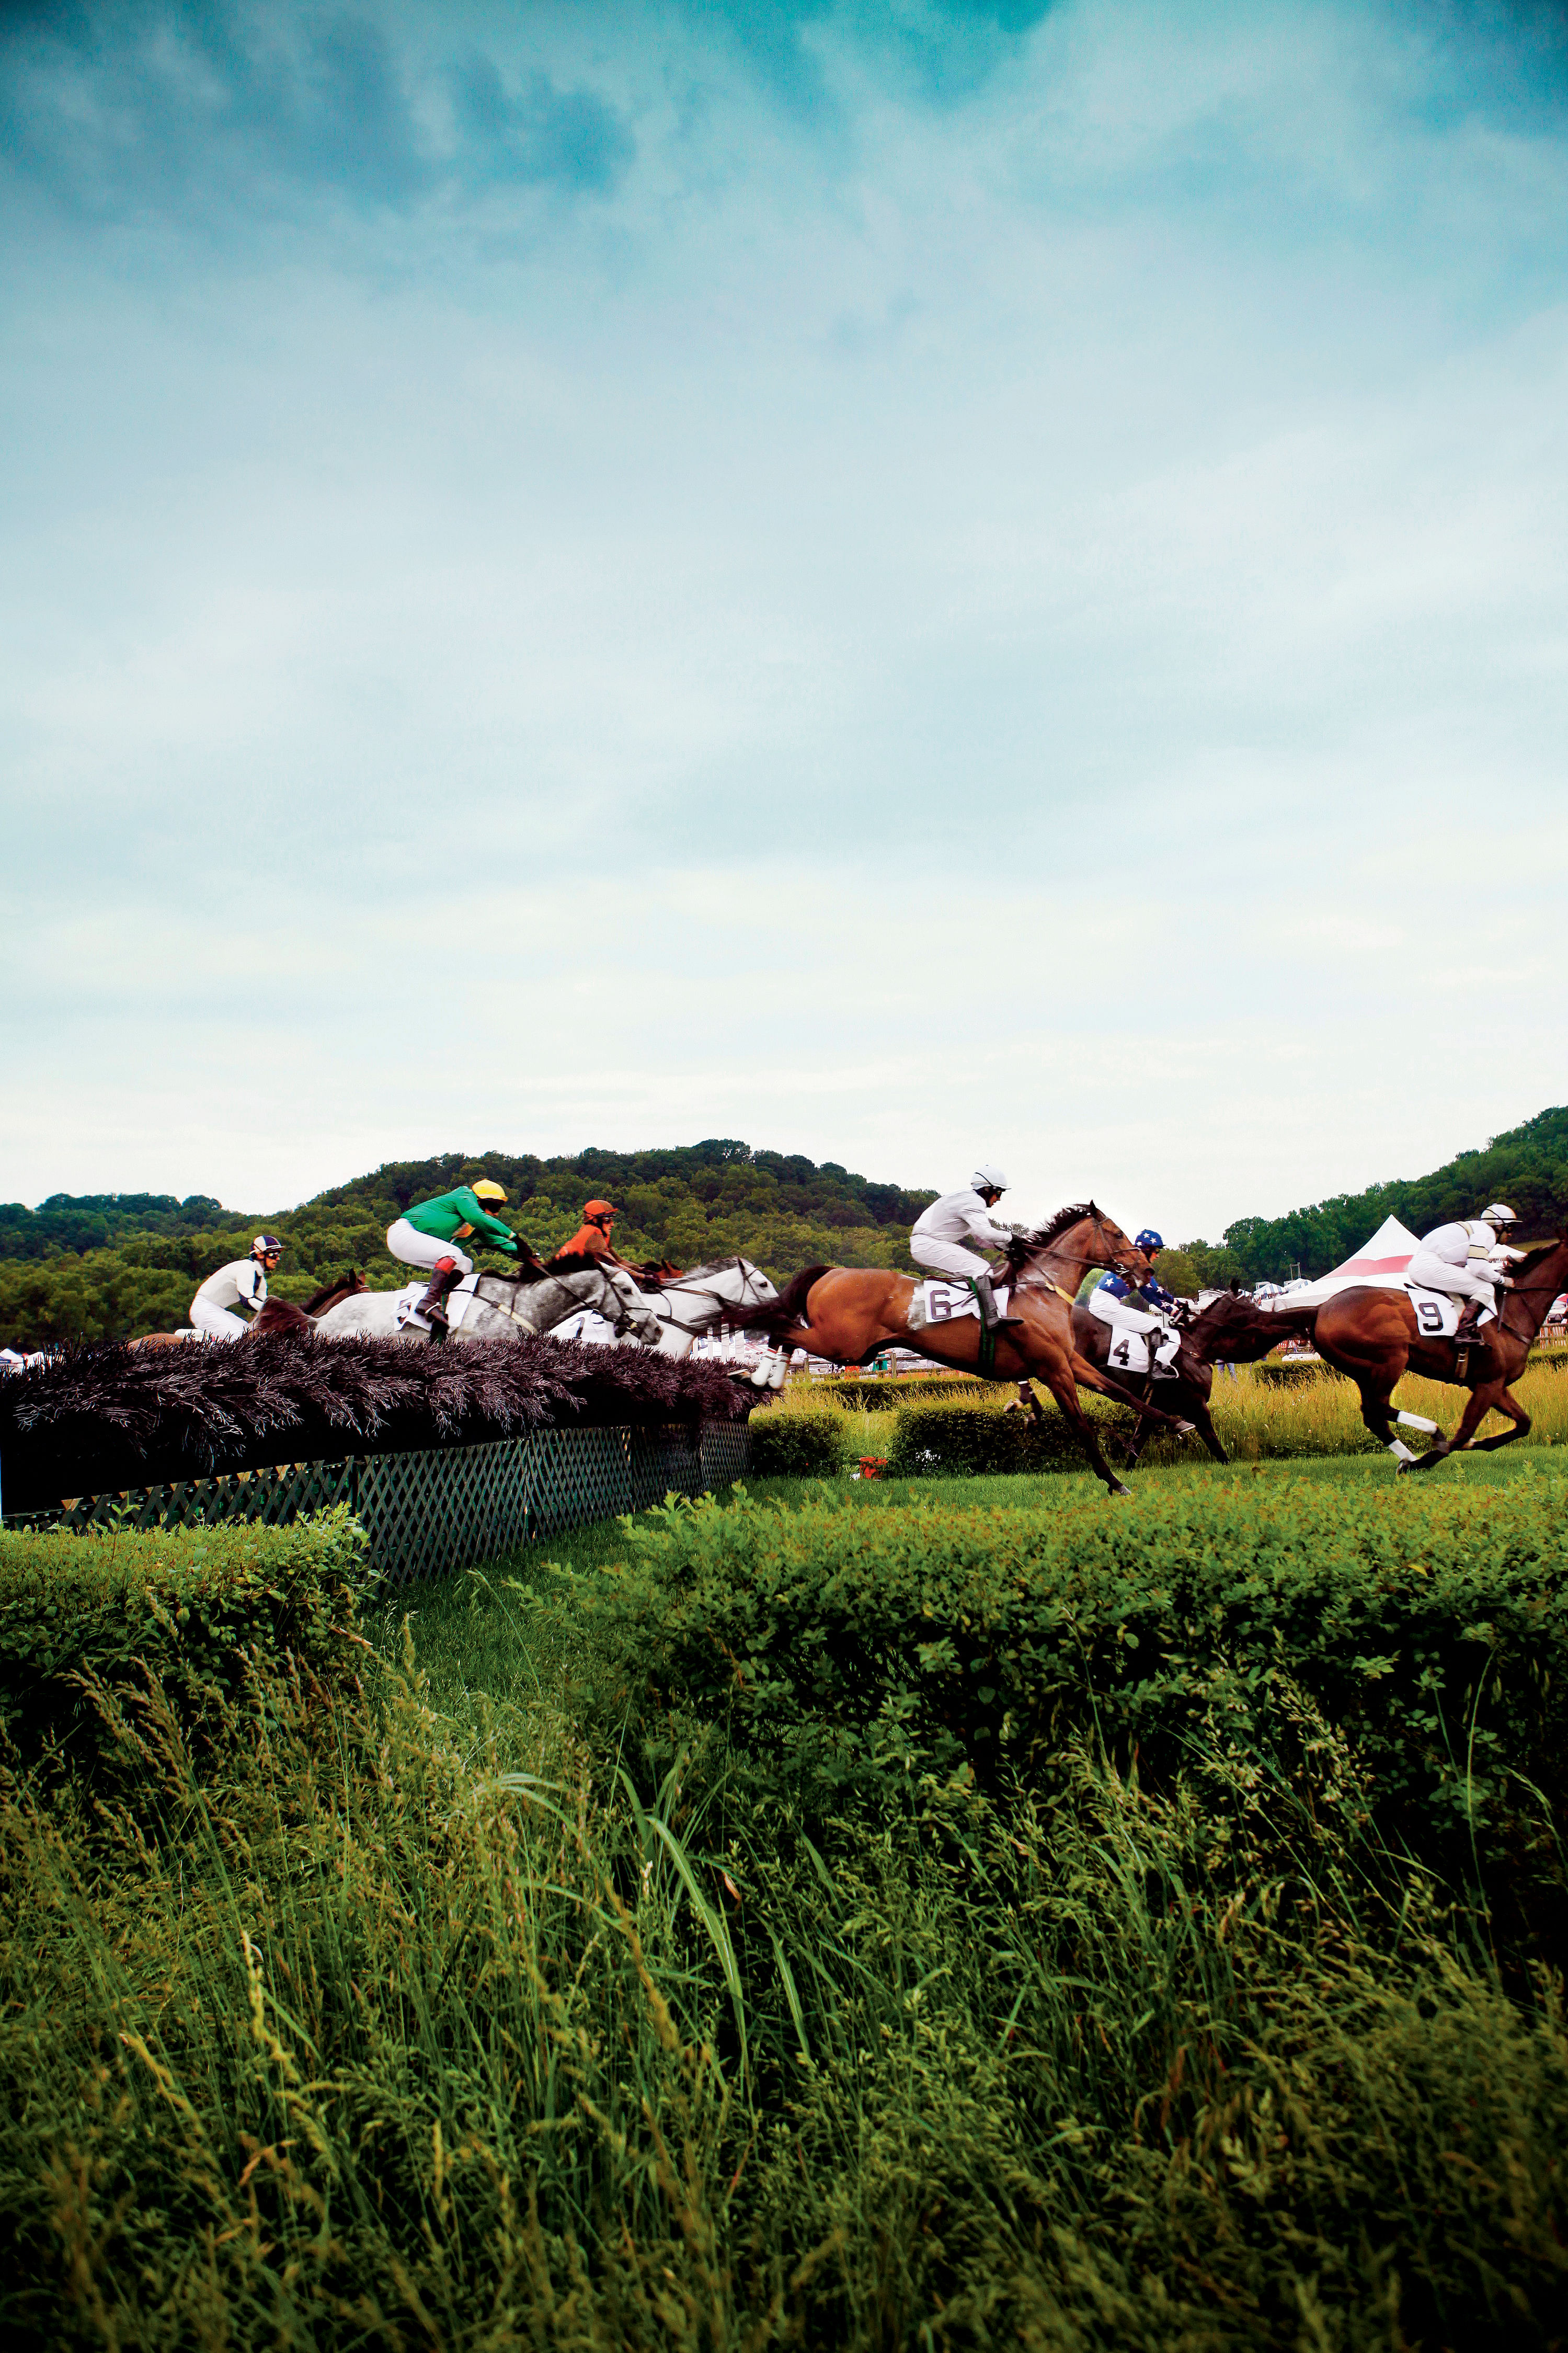 The Complete Guide to the Iroquois Steeplechase